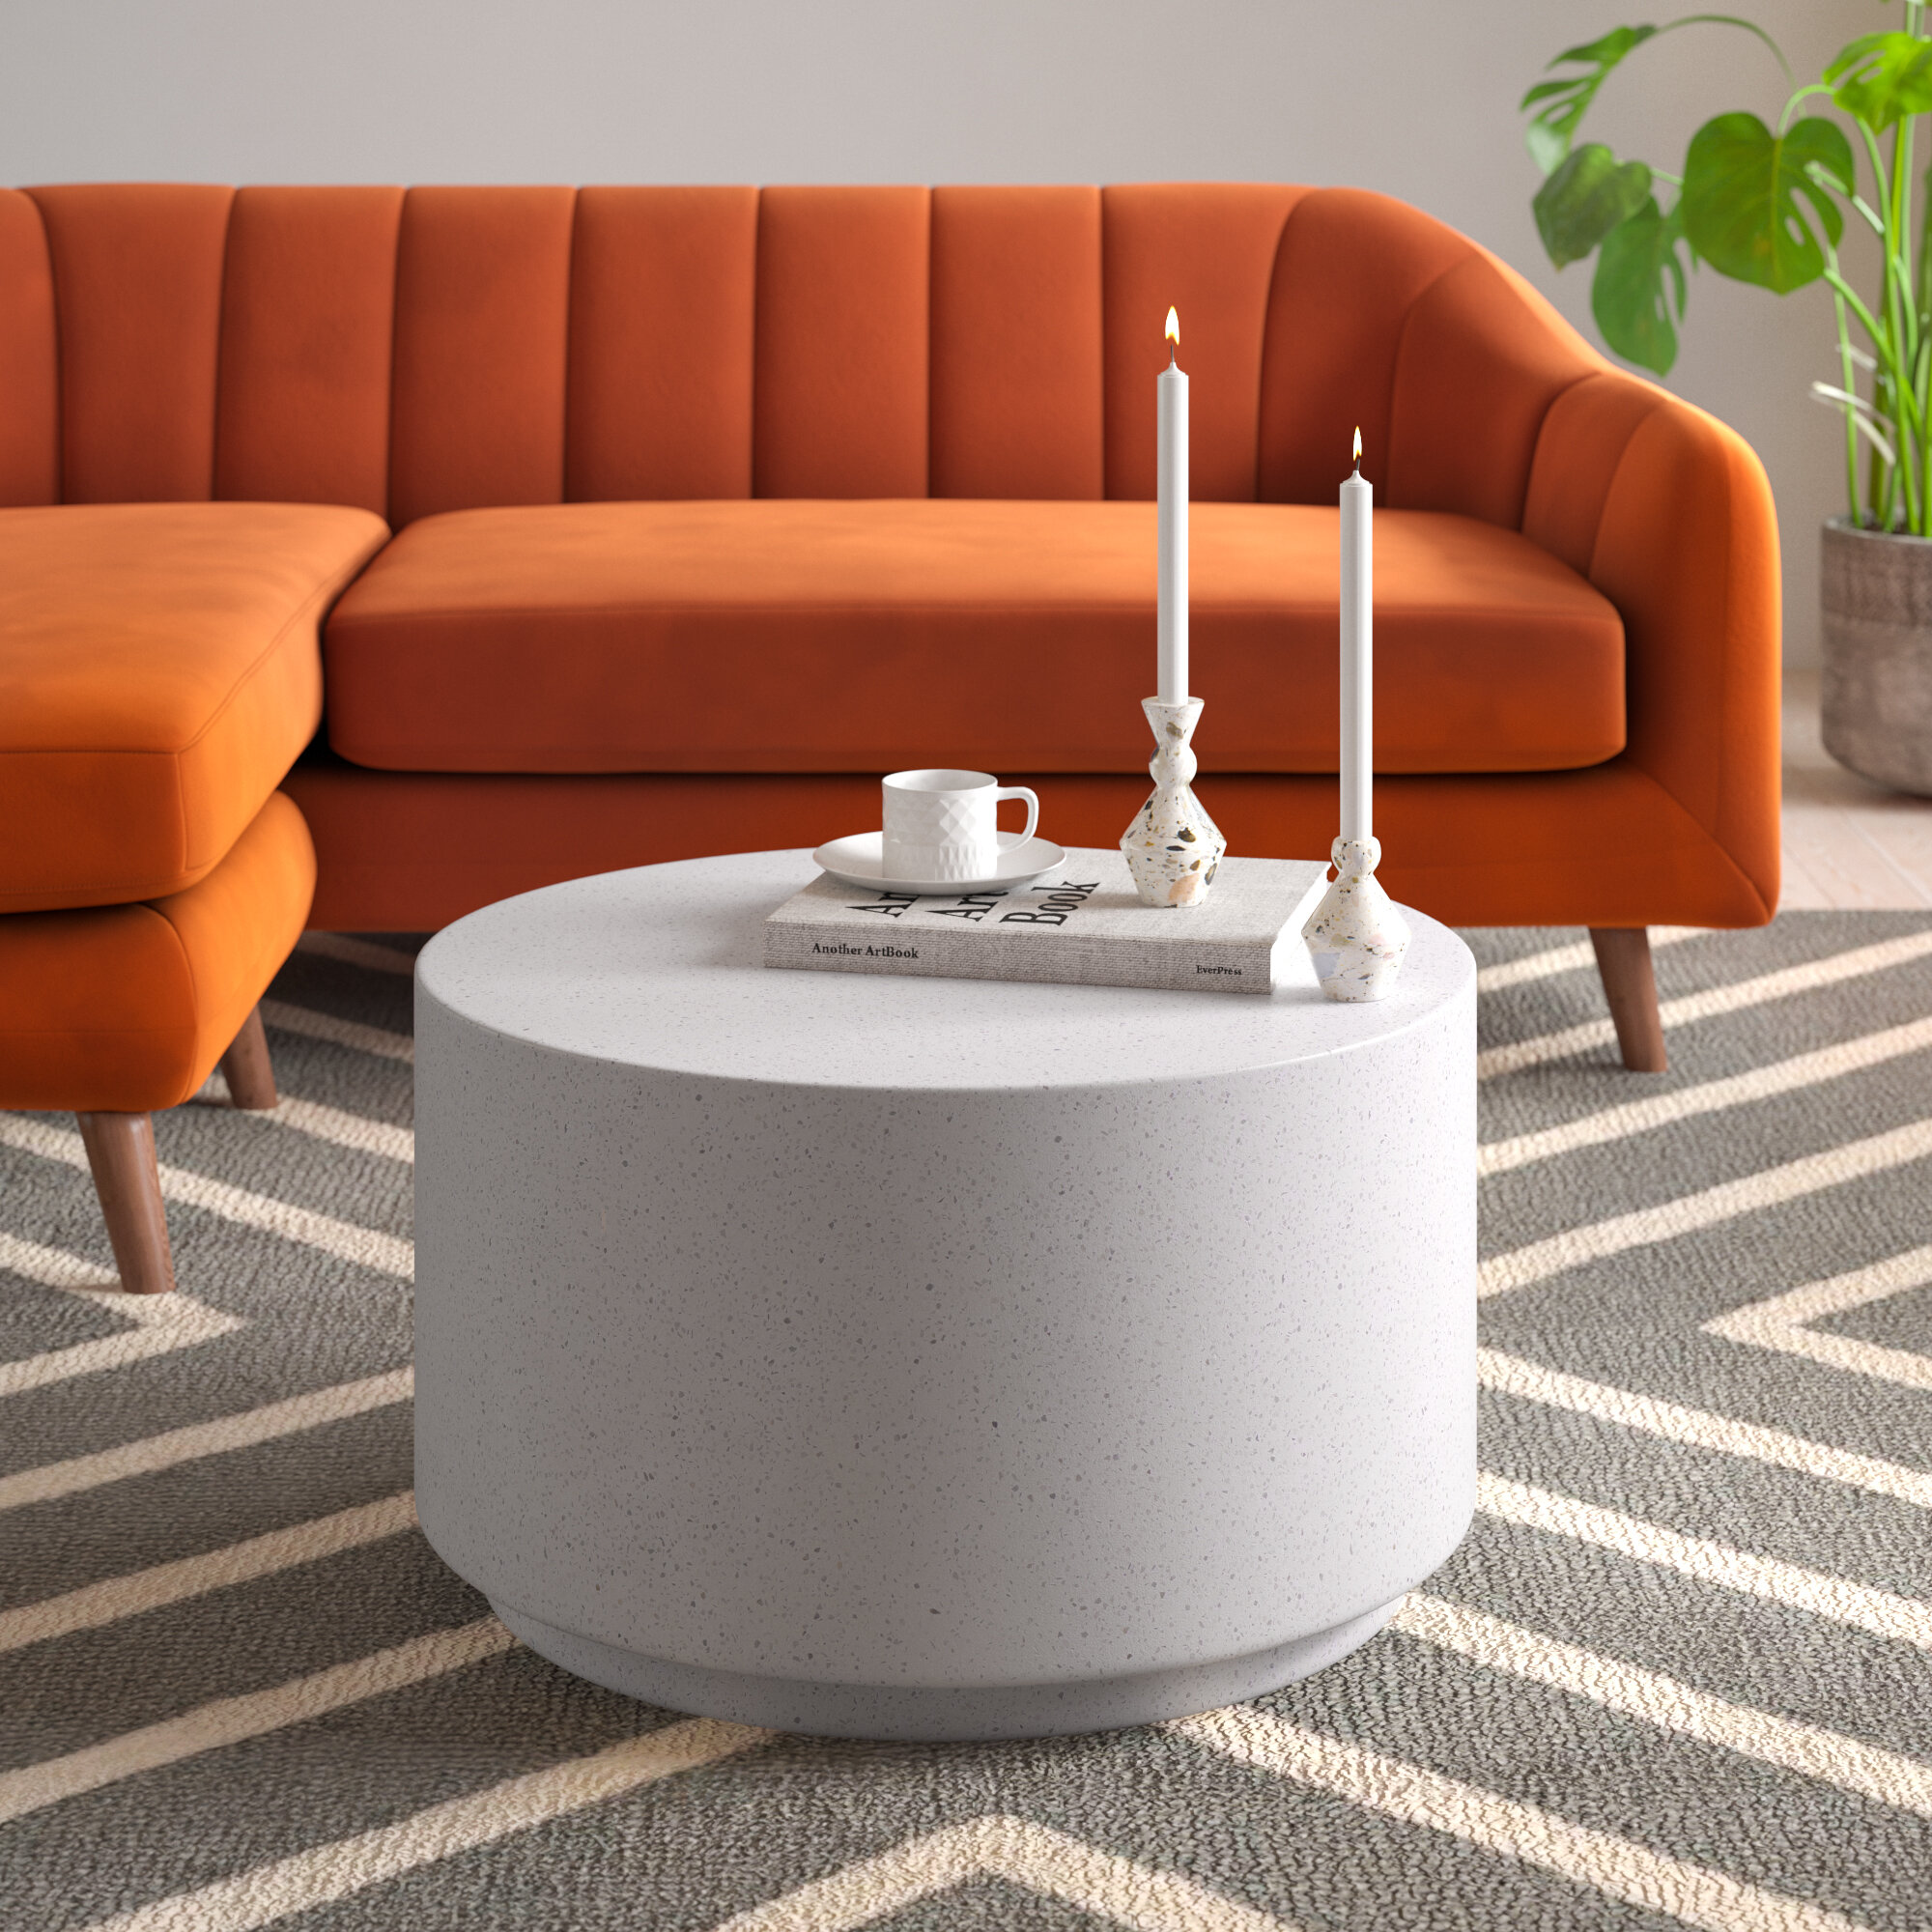 Degraw Drum Coffee Table Reviews Allmodern